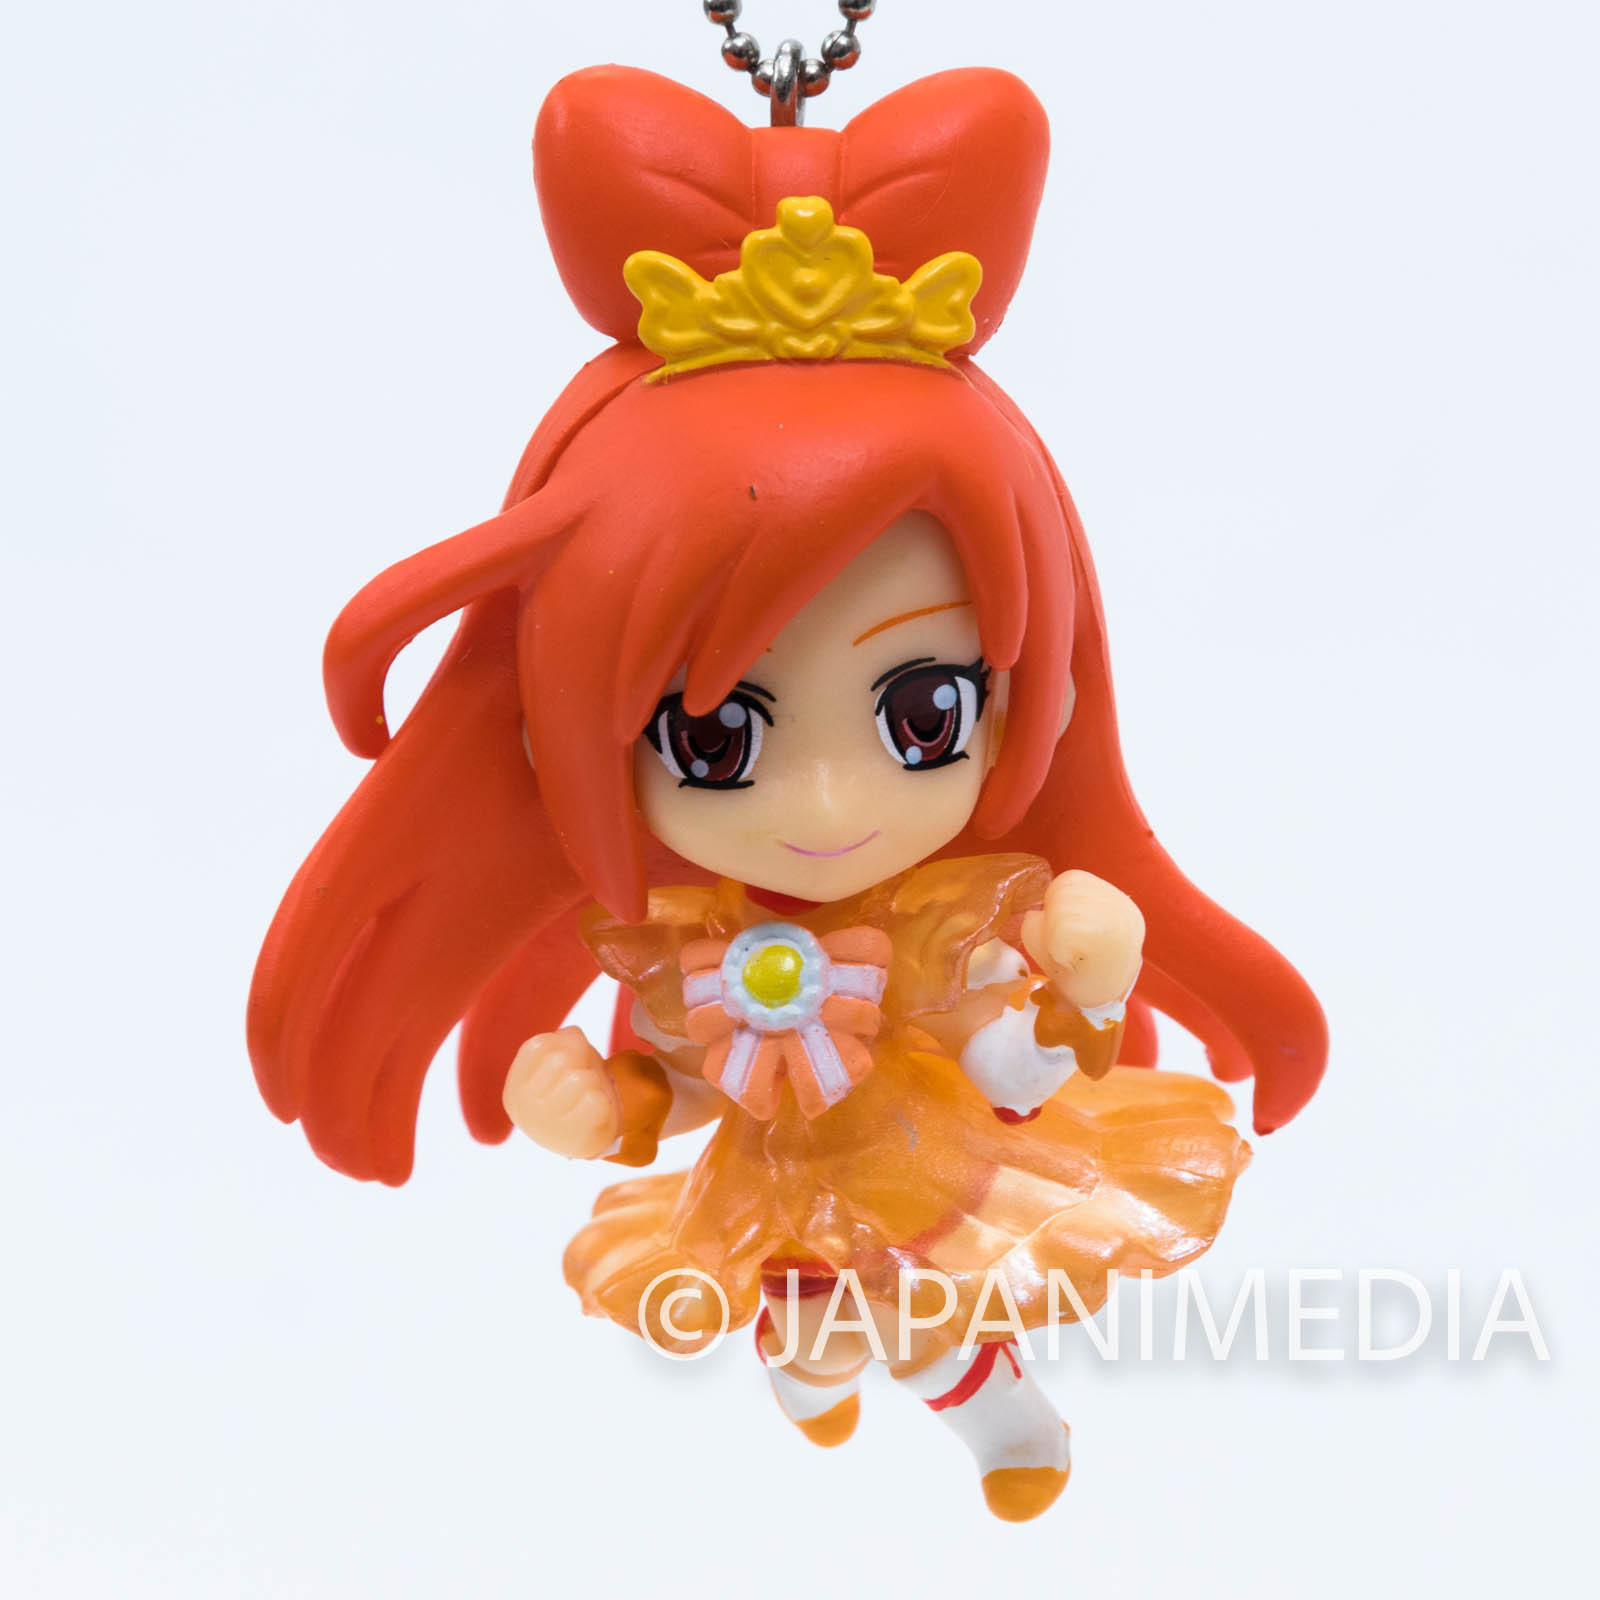 Smile PreCure! Princess Sunny PreCure Mascot Figure Ball Keychain JAPAN ANIME